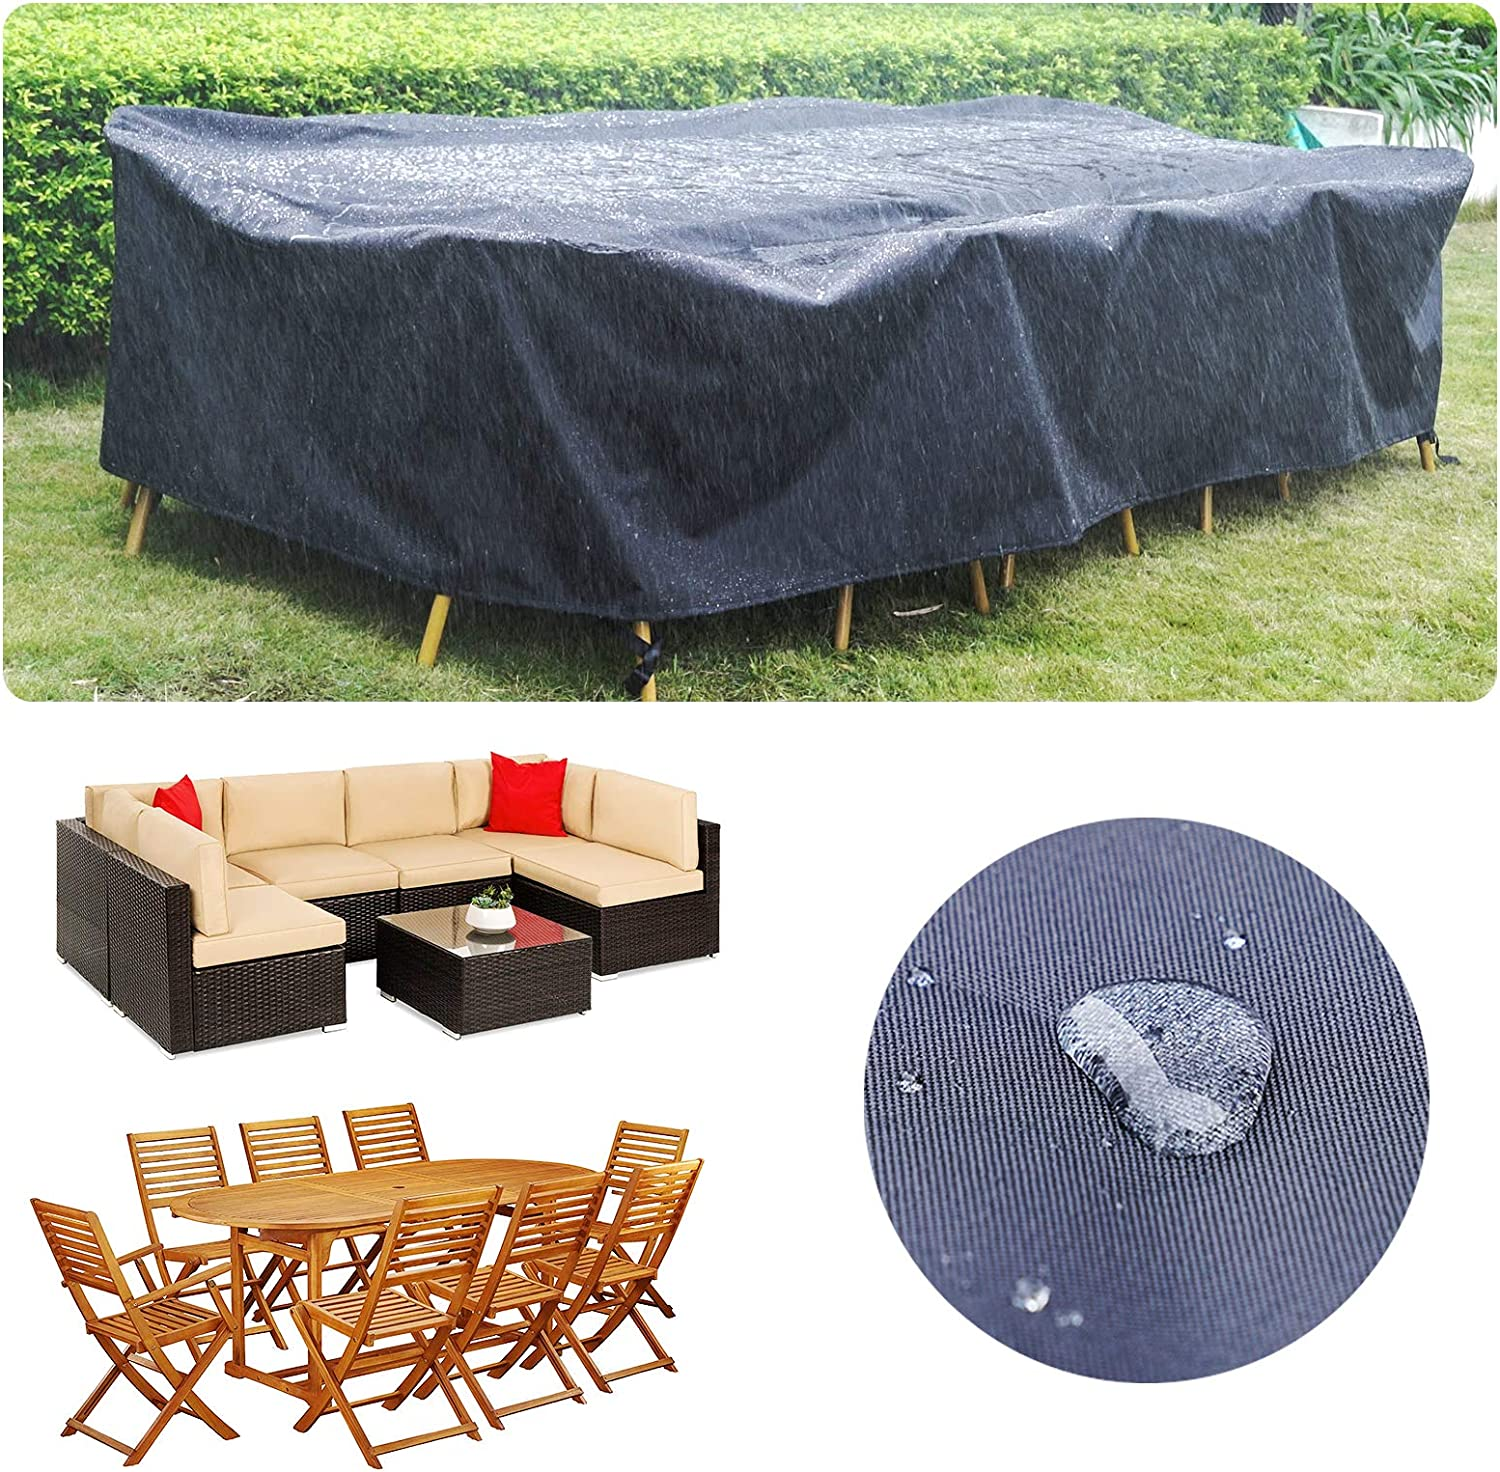 "118 Inch Patio Furniture Cover for Outdoor Snow Protection Waterproof Patio Table Chair Cover Rectangular UV Resistant Durable Sectional Sofa Protective Cover (118"" L x 57.8"" W x 27.5"" H)"